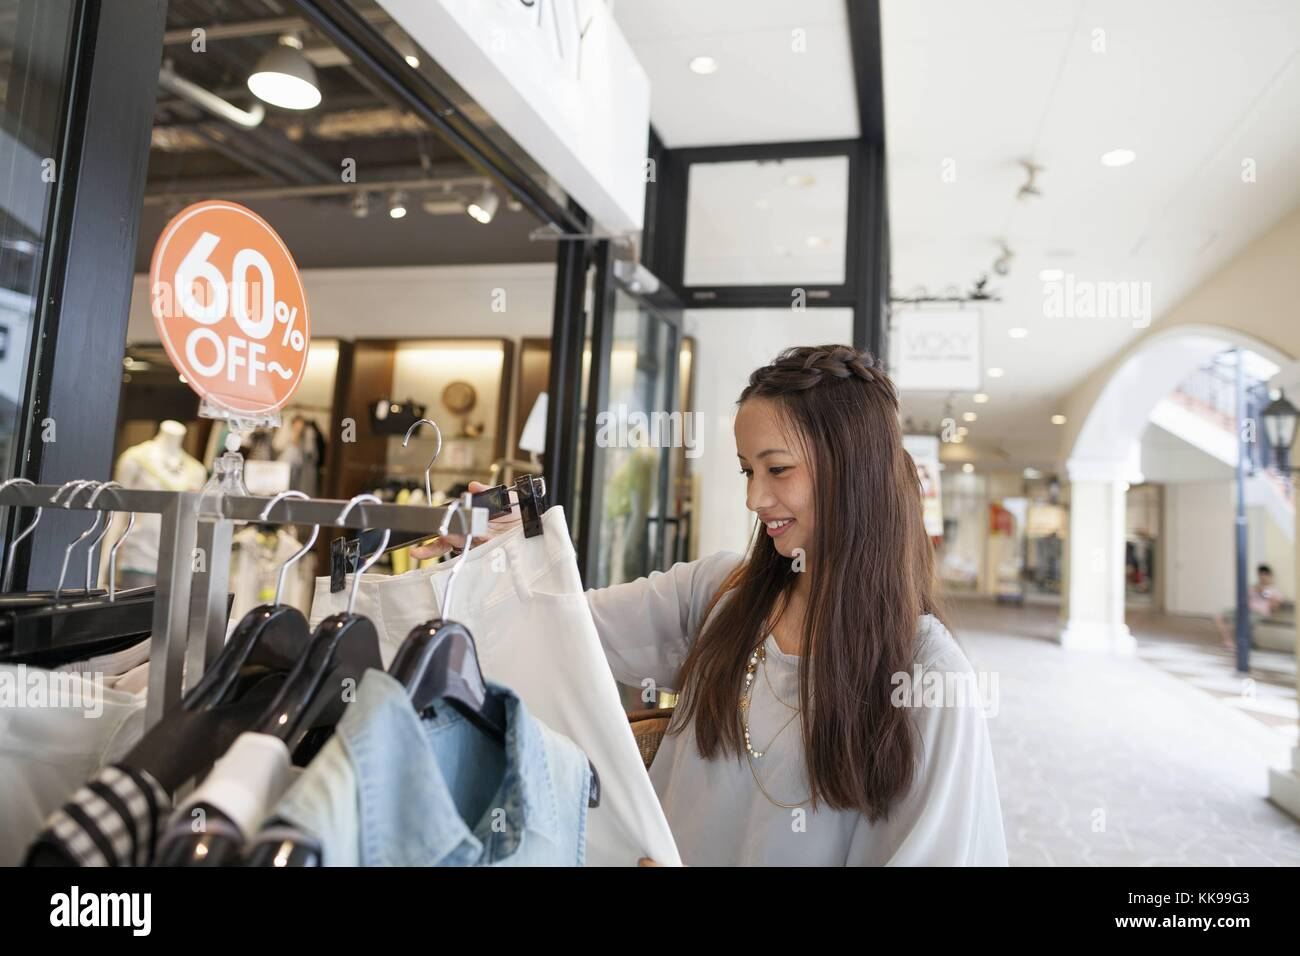 Young woman on a shopping trip. | usage worldwide, Royalty free: For comercial usage price on demand. - Stock Image